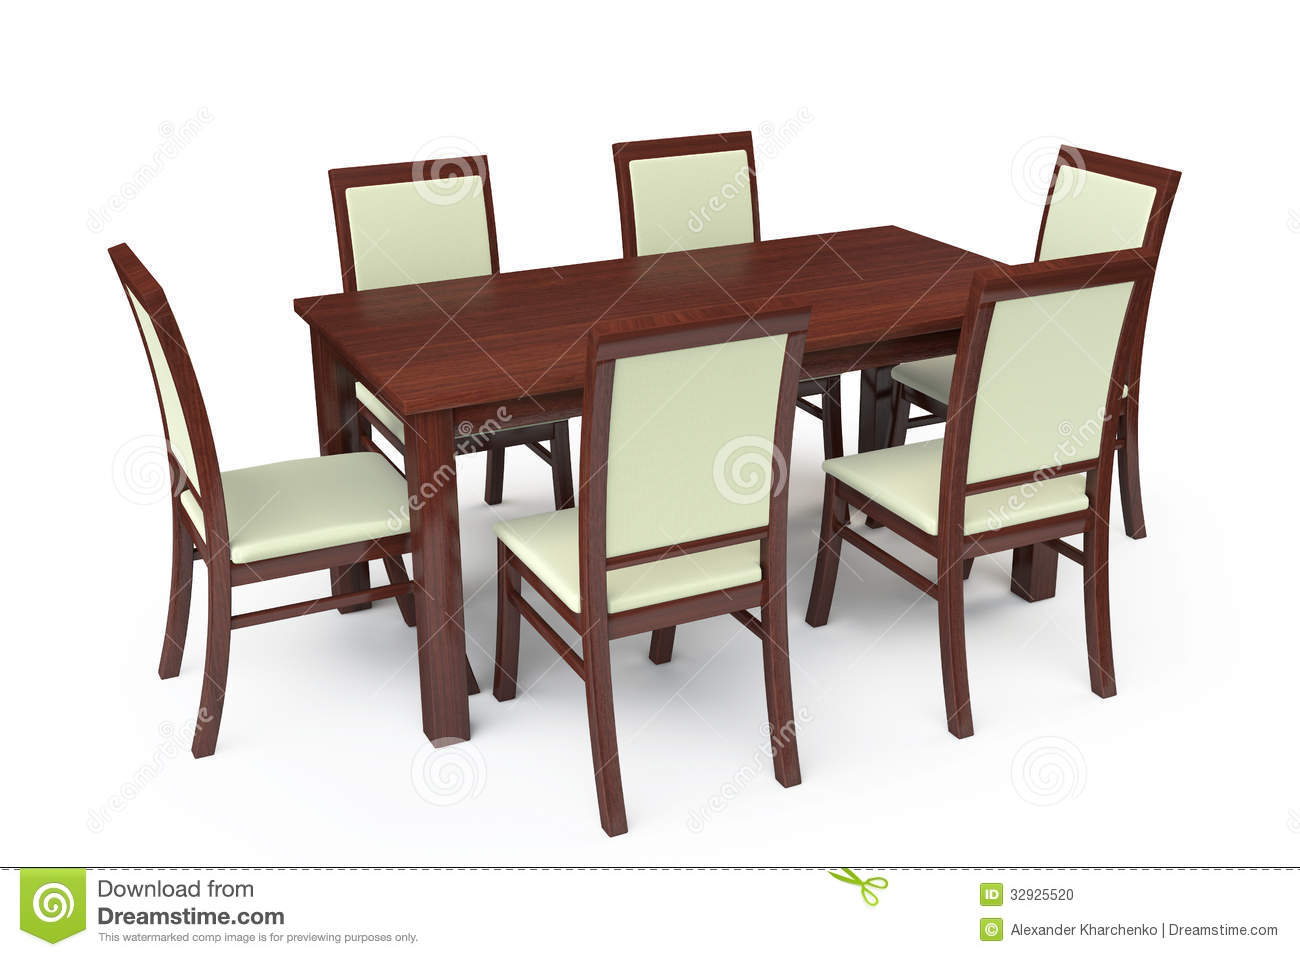 Clipart dining table.